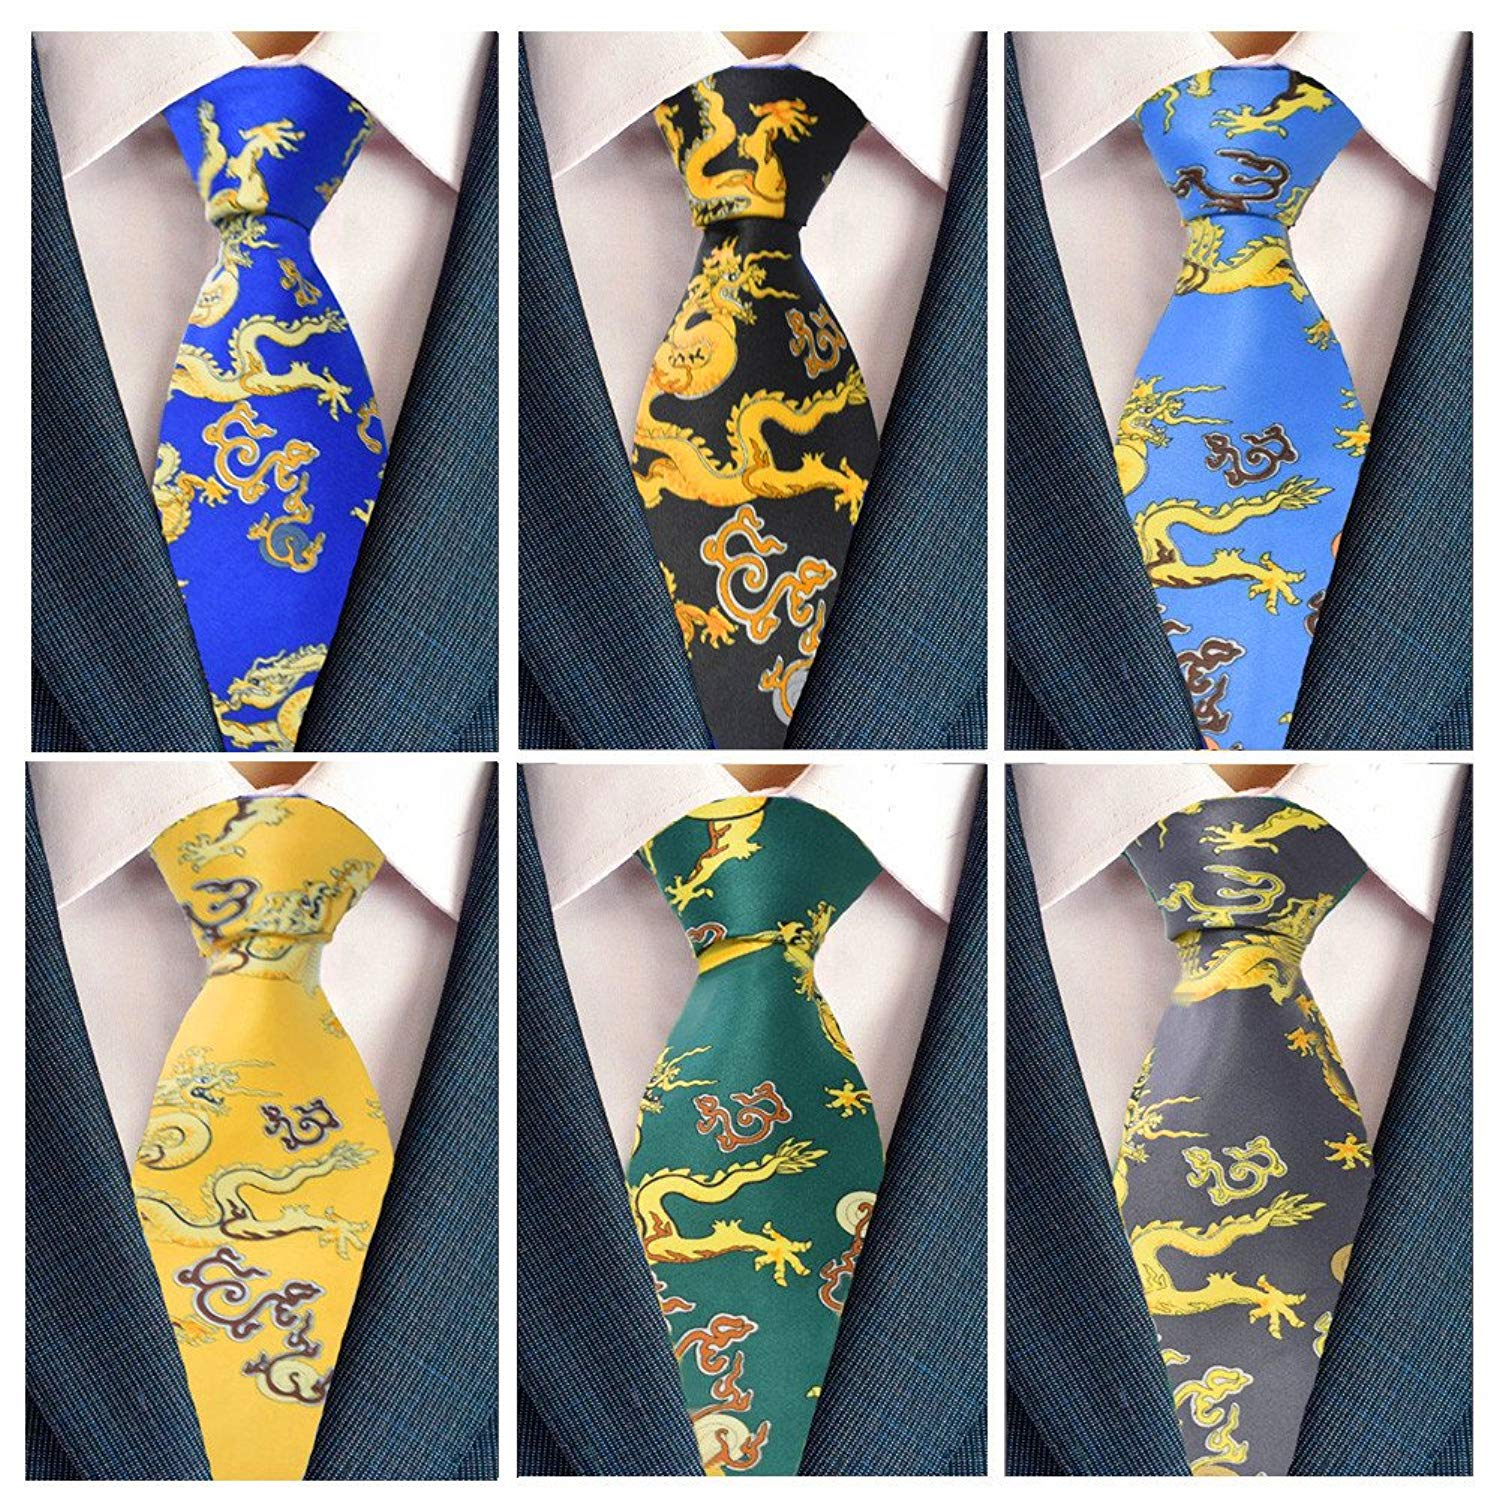 205031bfd7b25 Get Quotations · Fuerjia Mens Ties high popularity Silk Tie Sheep Dragon  Panda Printed Jacquard Woven Neck ties